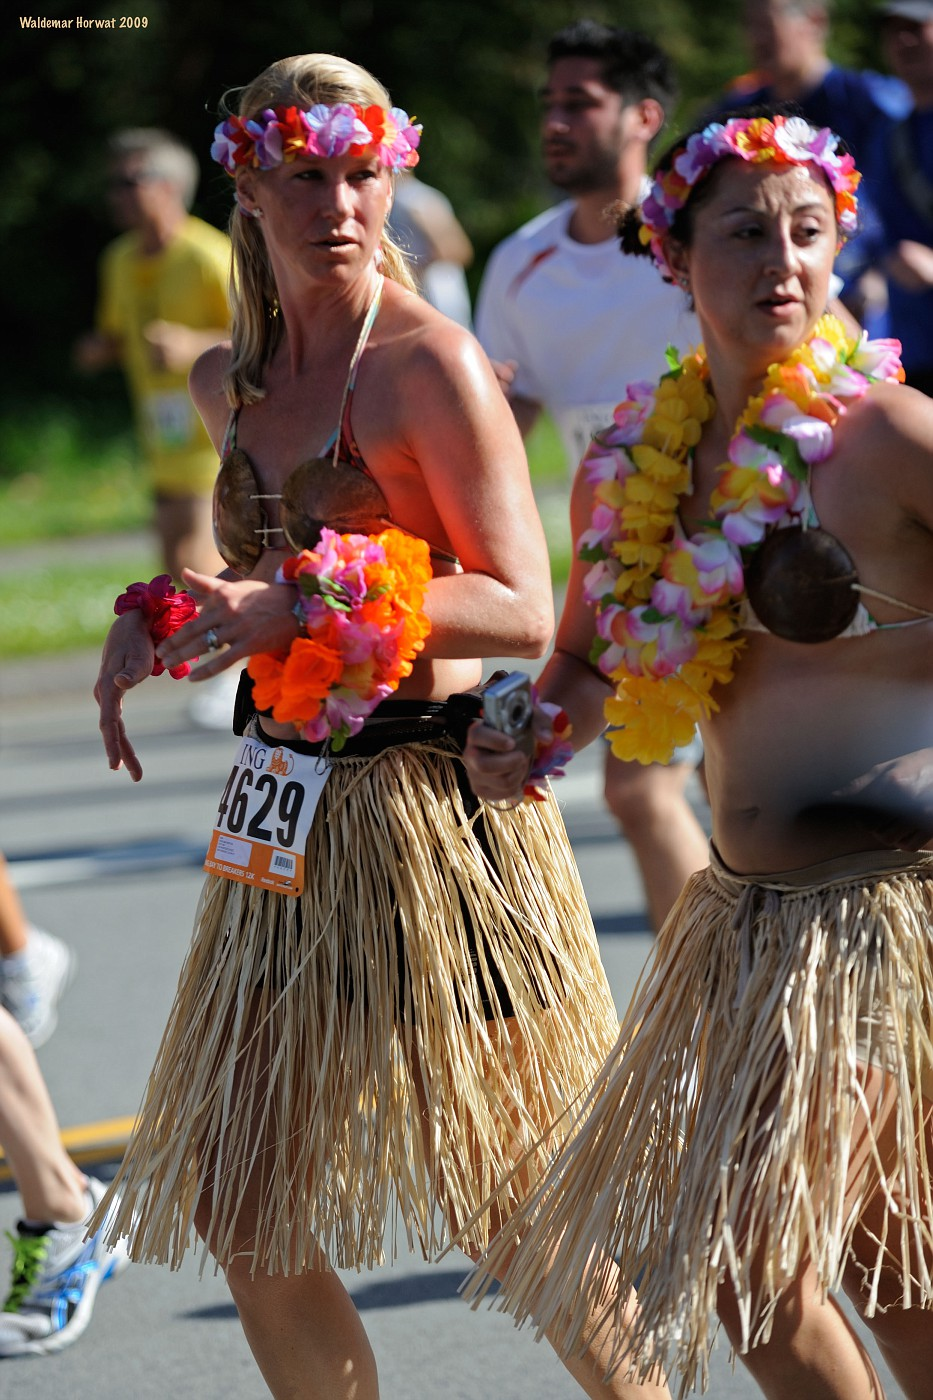 Leis and Coconut Bras